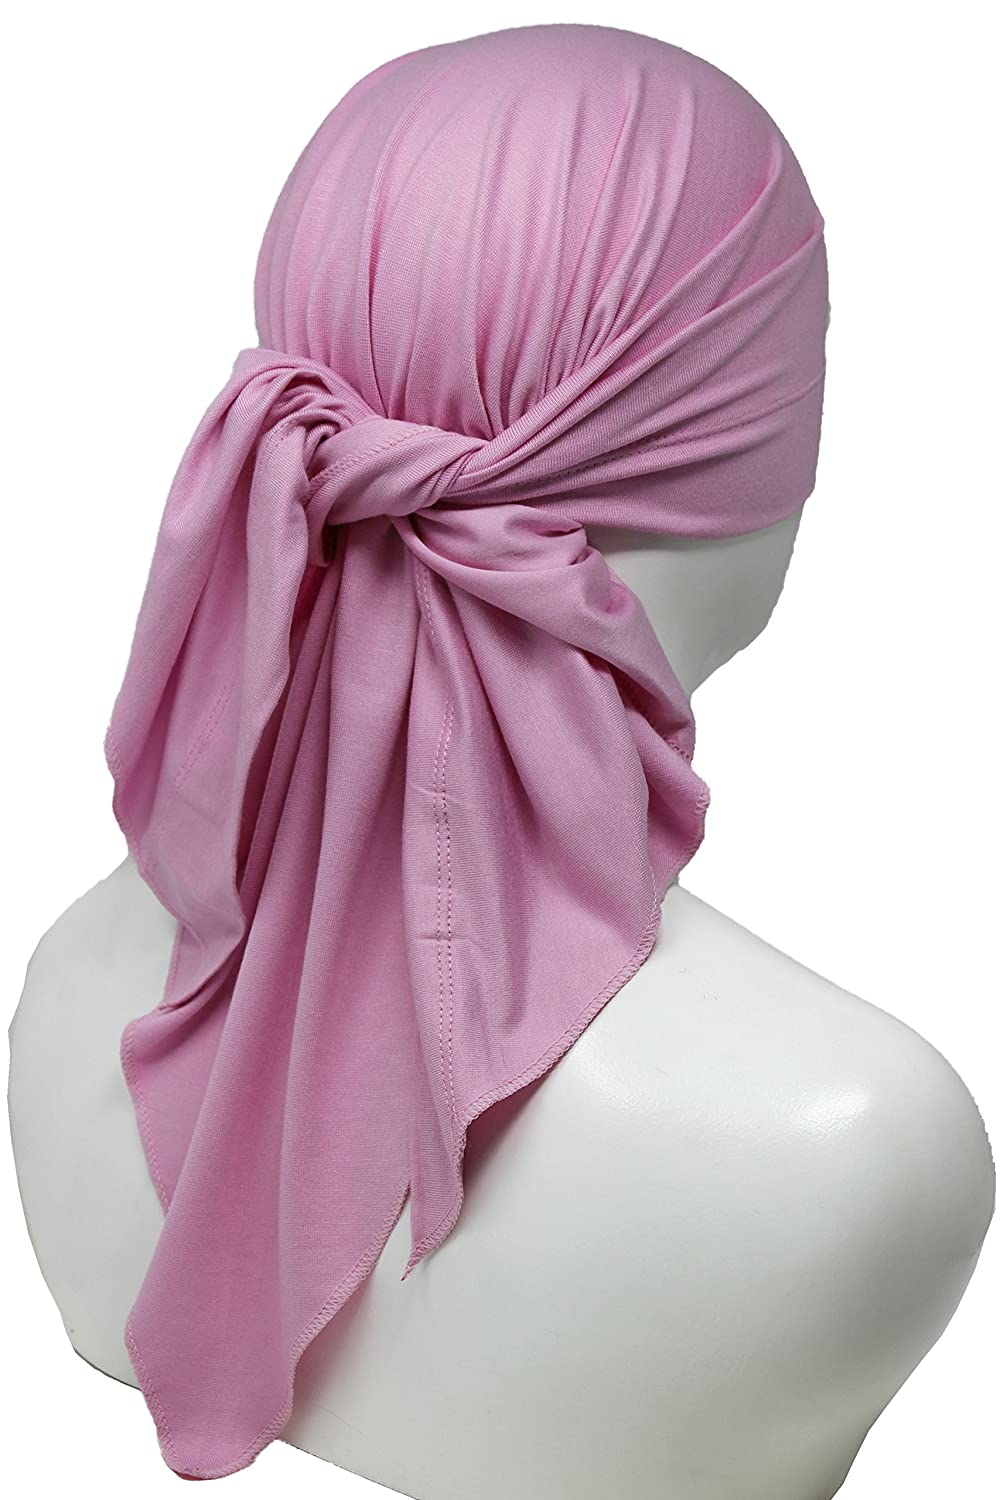 Deresinas Unisex Extra-Large Bandana for Hair Loss